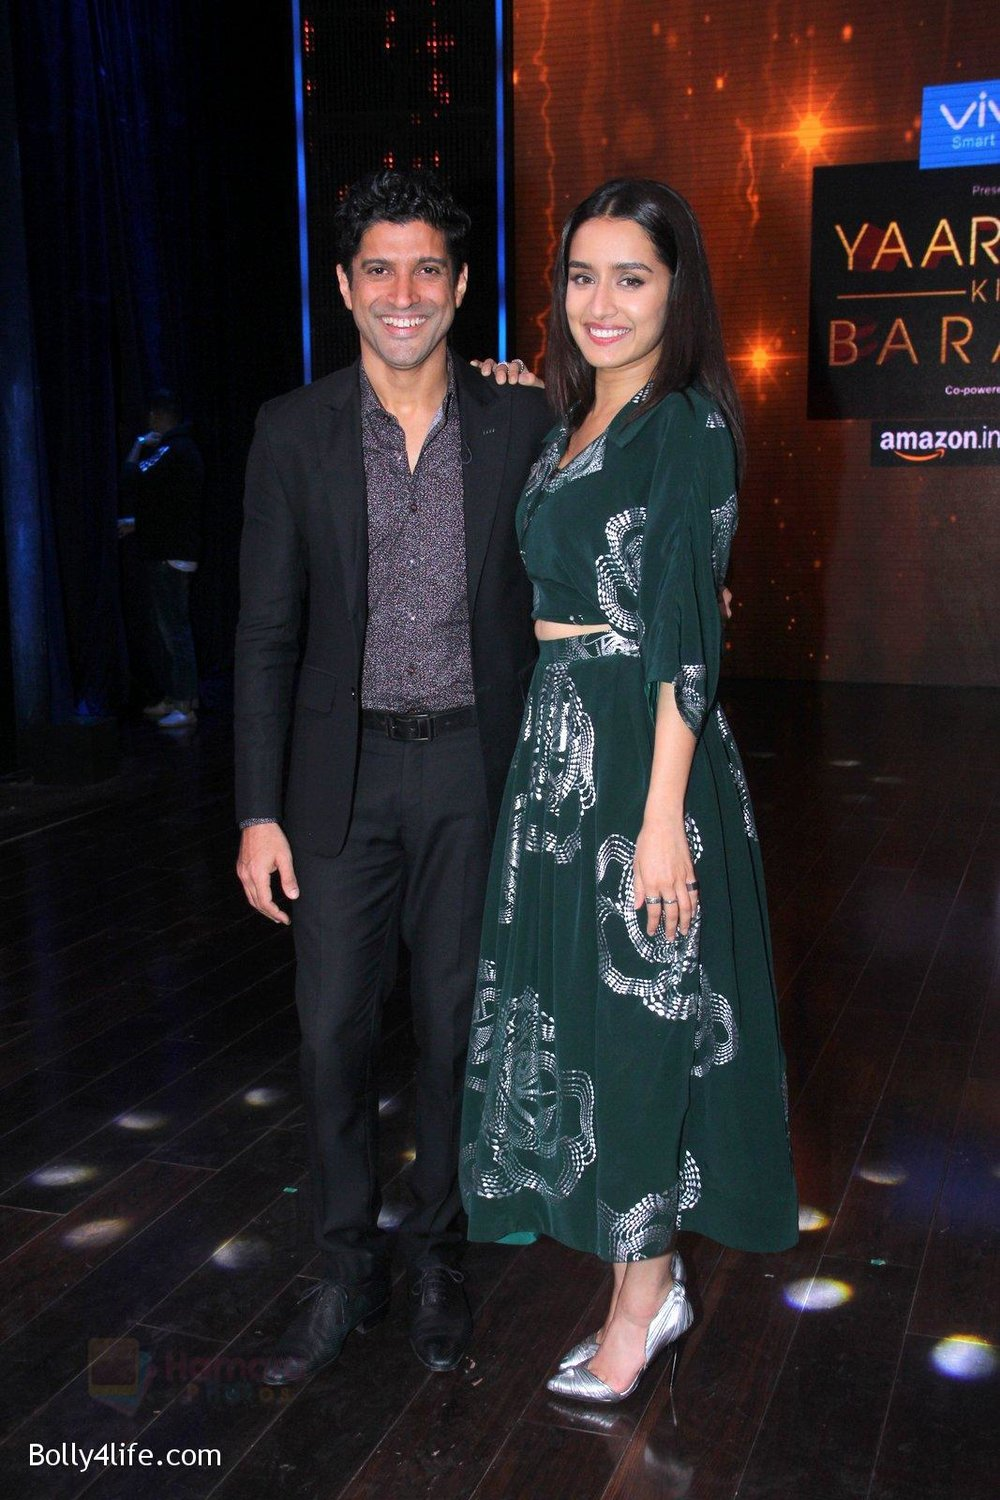 Shraddha-Kapoor-and-Farhan-Akhtar-promote-Rock-On-2-on-the-sets-of-Yaaron-Ki-Baraat-Show-on-Zee-Tv-on-23rd-Oct-2016-72.jpg